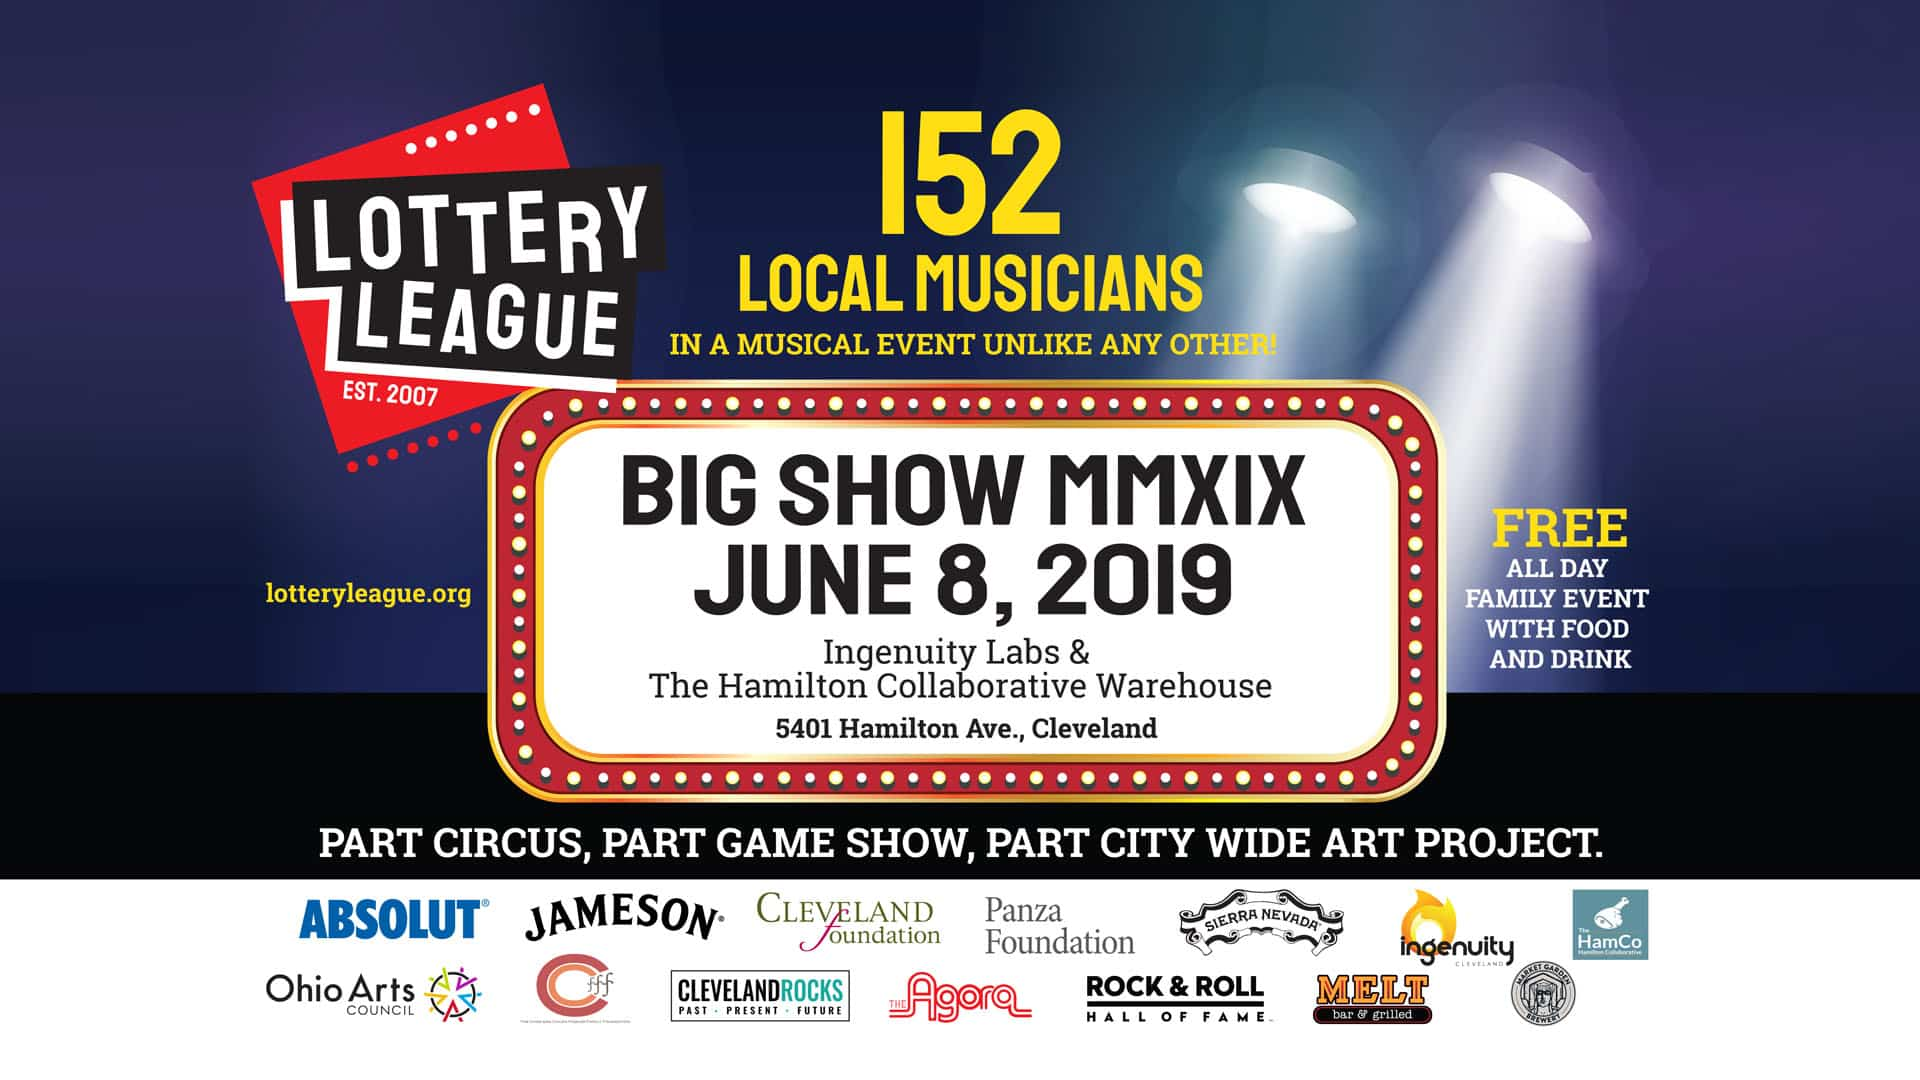 Cleveland Lottery League Big Show MMXIX - Melt Bar and Grilled